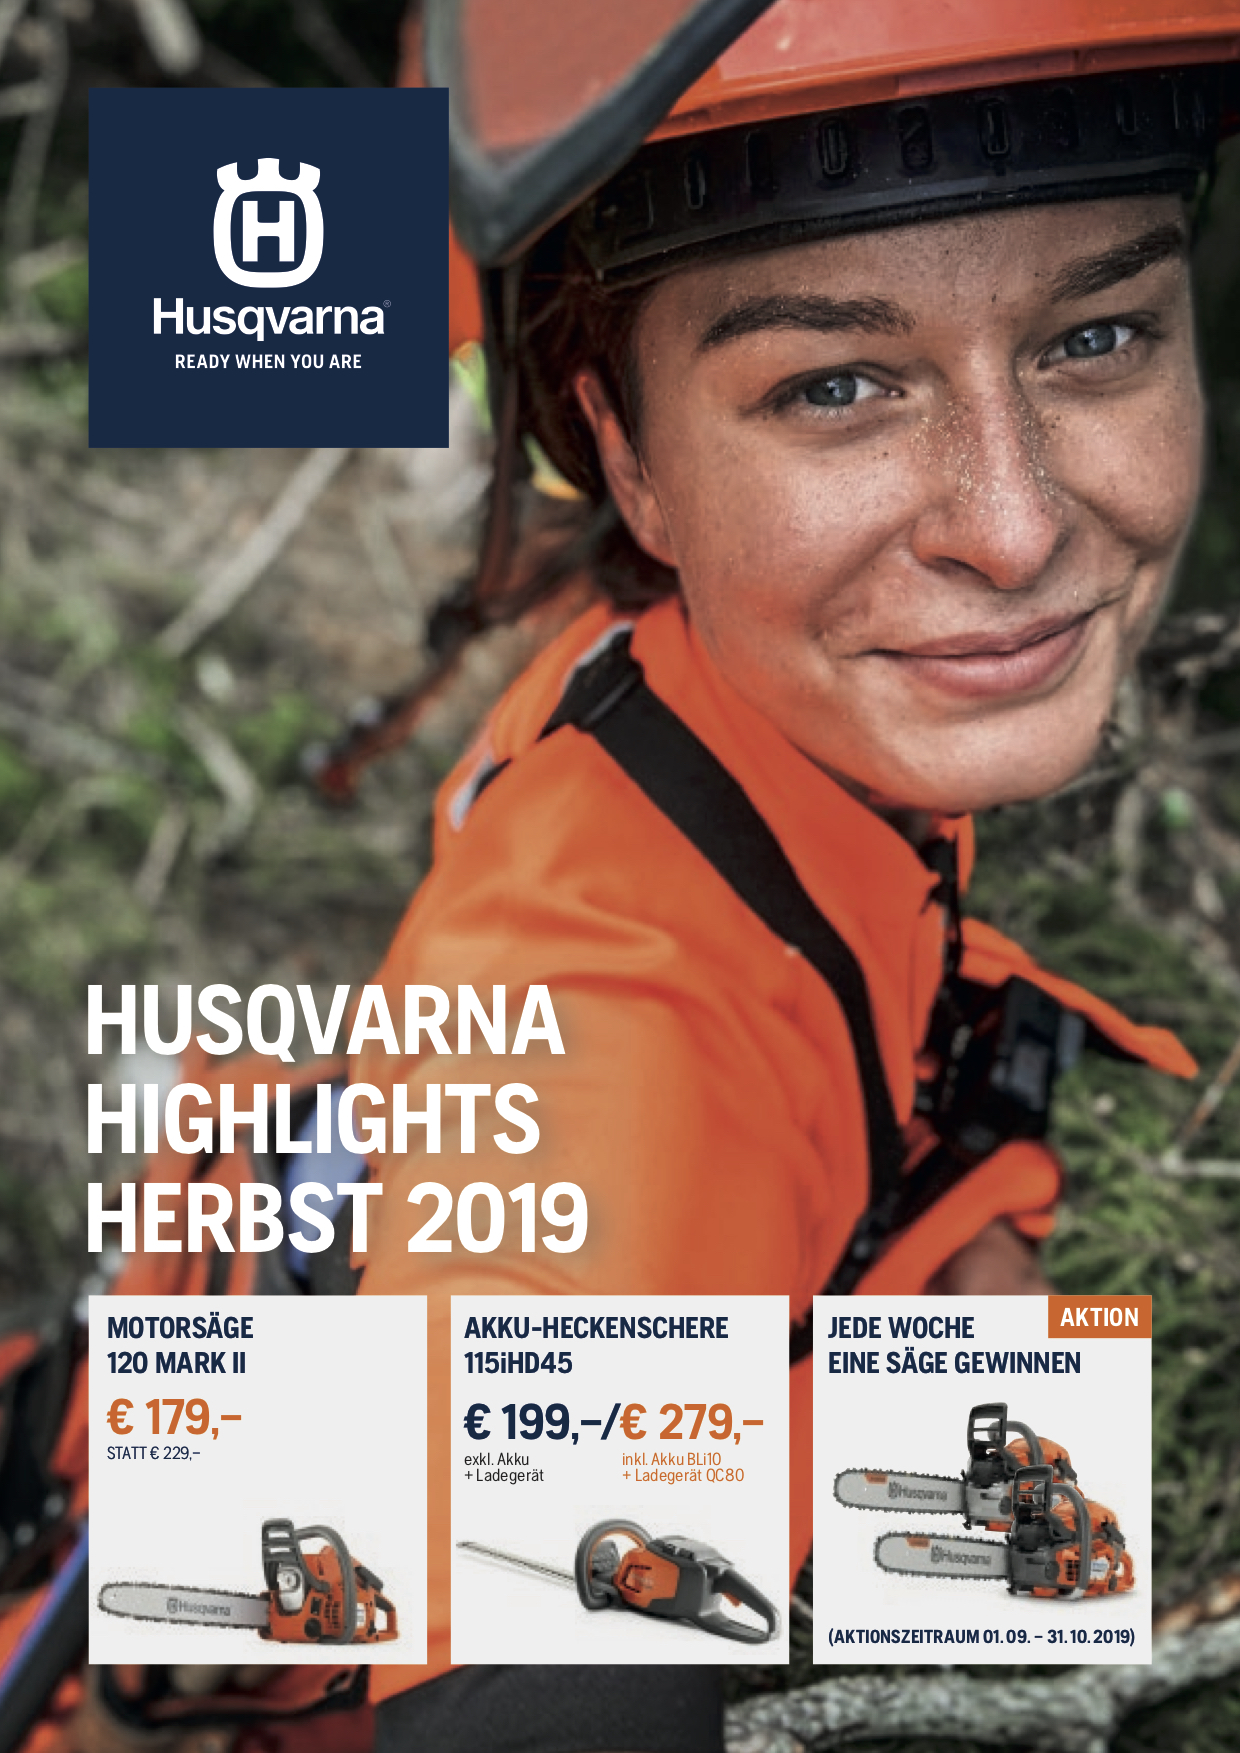 Husqvarna Herbst Highlights 2019